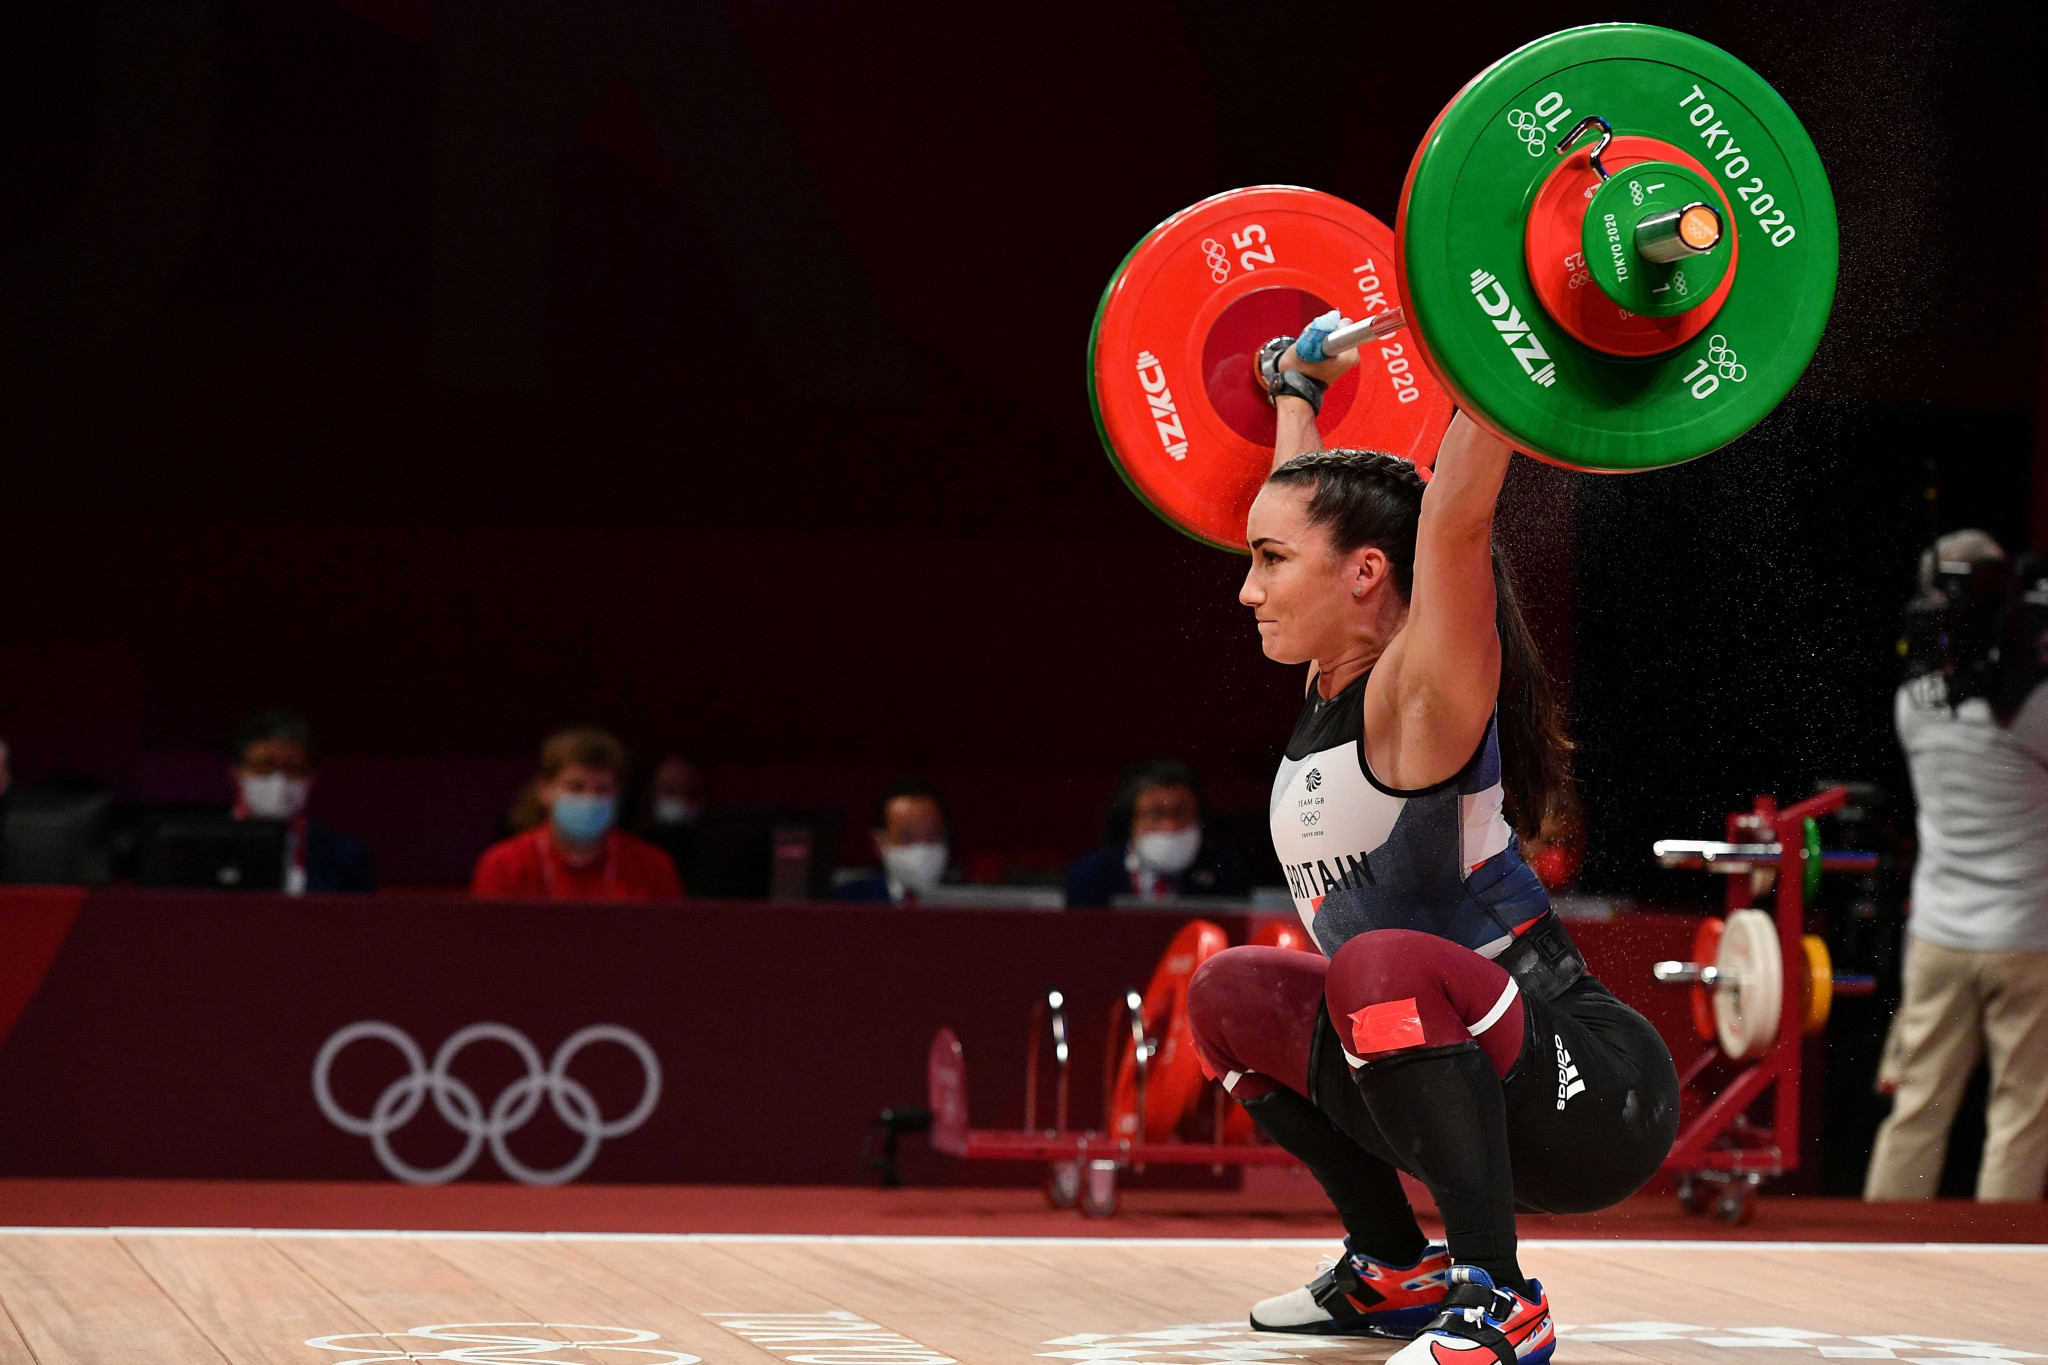 """Weightlifters' leader Davies hails """"new chapter"""" that curbs influence of doping nations"""